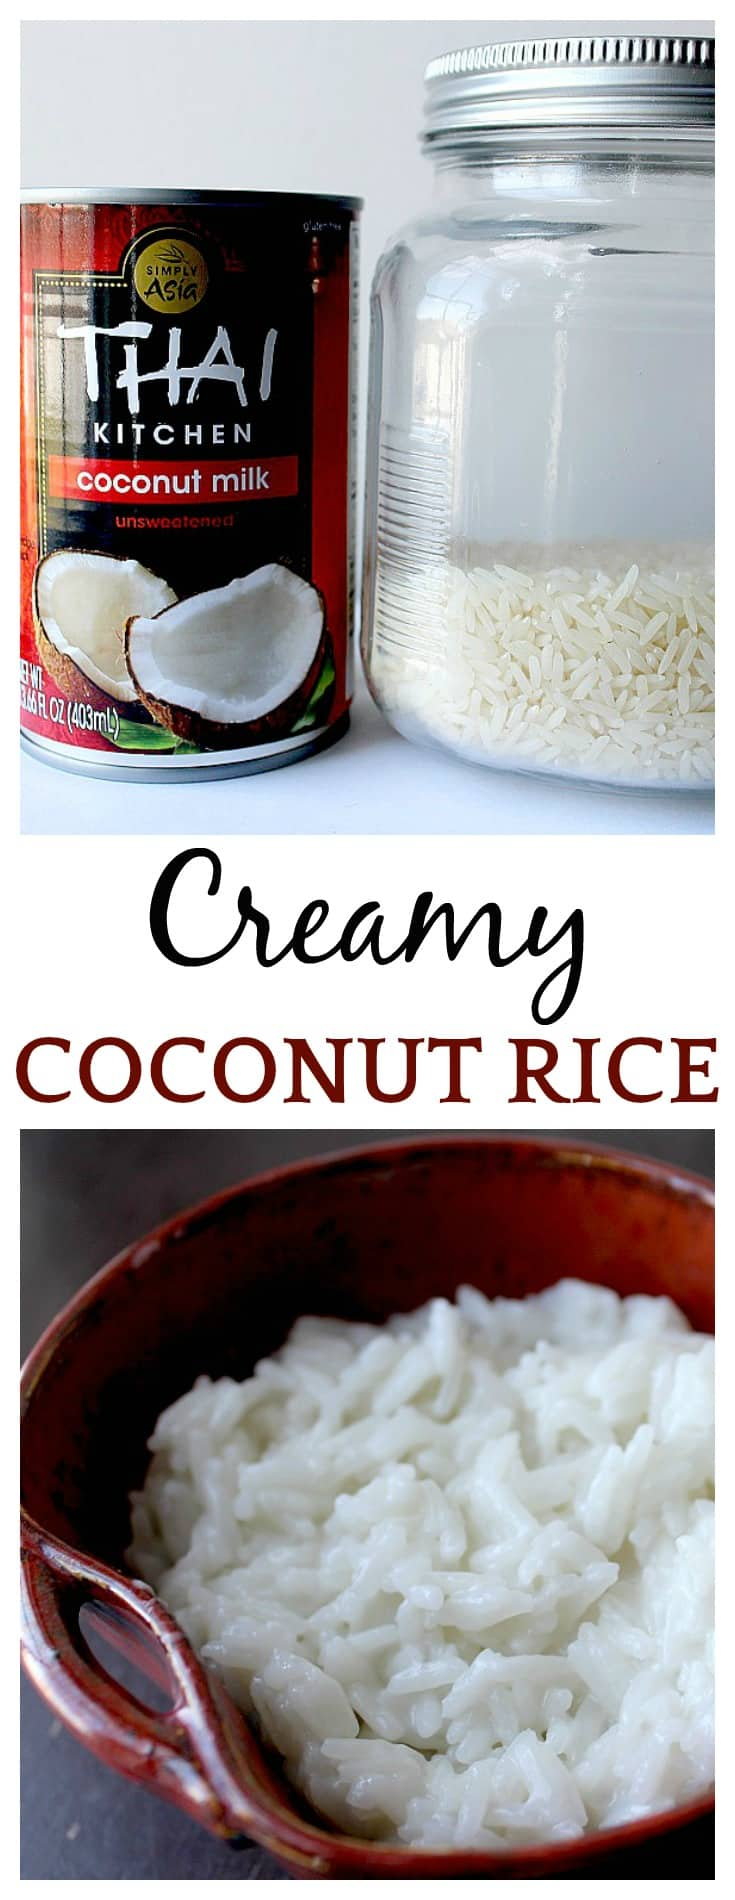 Creamy Coconut Rice - the easiest way to make the creamiest coconut rice that is just loaded with flavor! This coconut rice recipe is made at least once a week and goes so well with so many dishes! Definitely, a family friendly recipe everyone is sure to love!